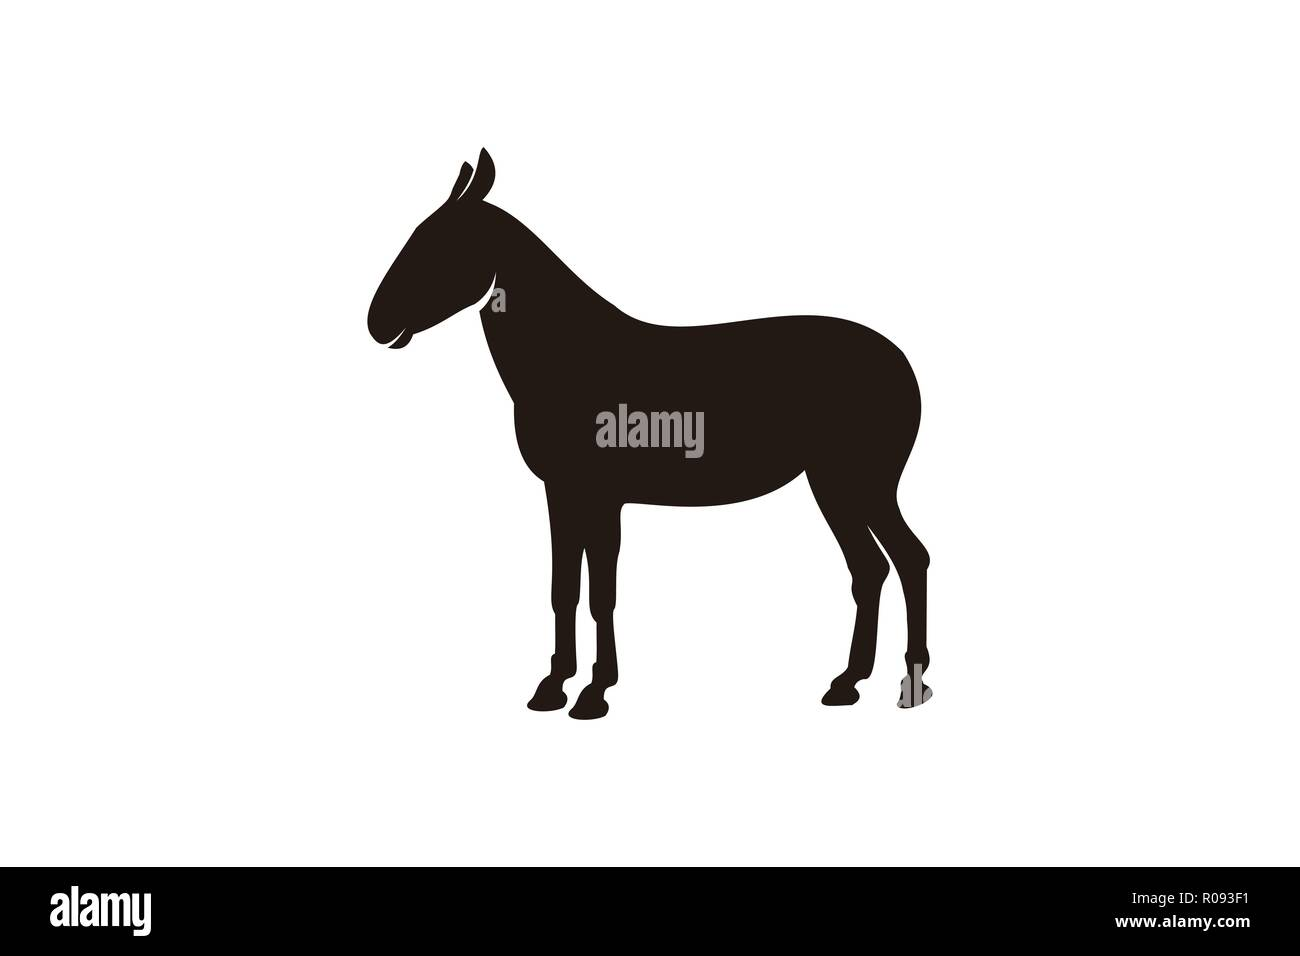 donkey, ox logo Designs Inspiration Isolated on White Background - Stock Image